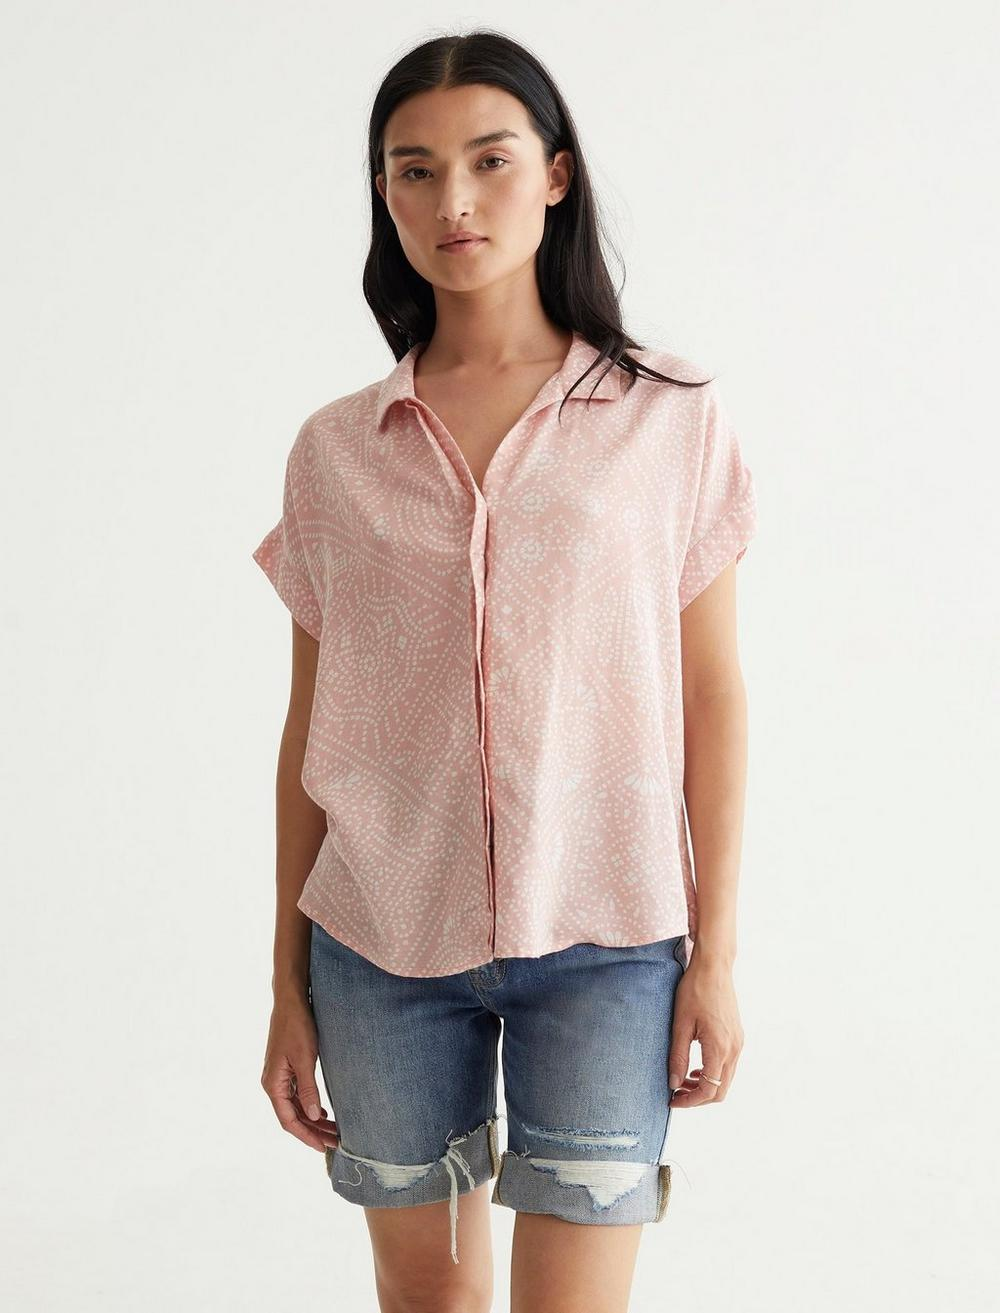 SHORT SLEEVE TIE FRONT SHIRT, image 1